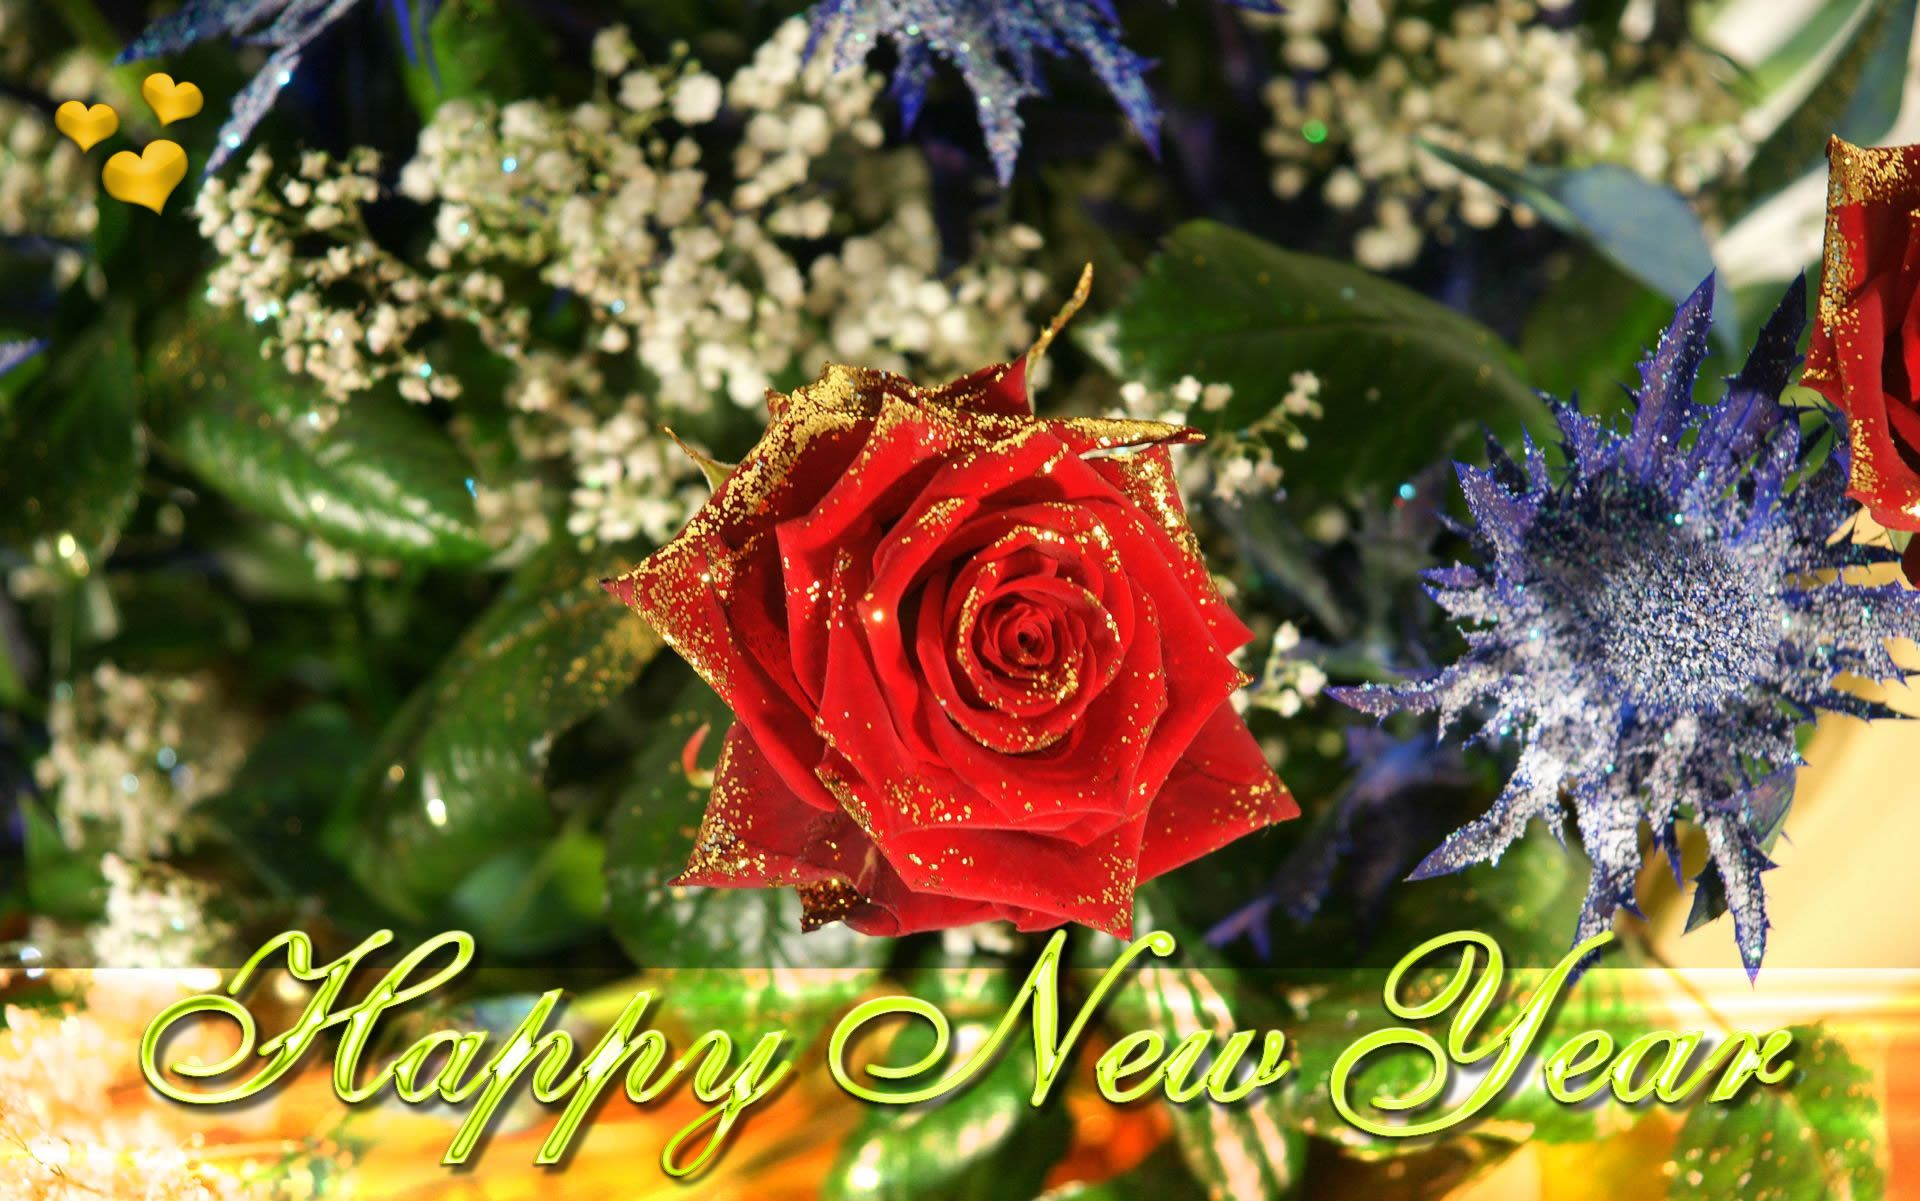 Beaufiful New Year Download Photos >> Happy New Year Best Wallpapers